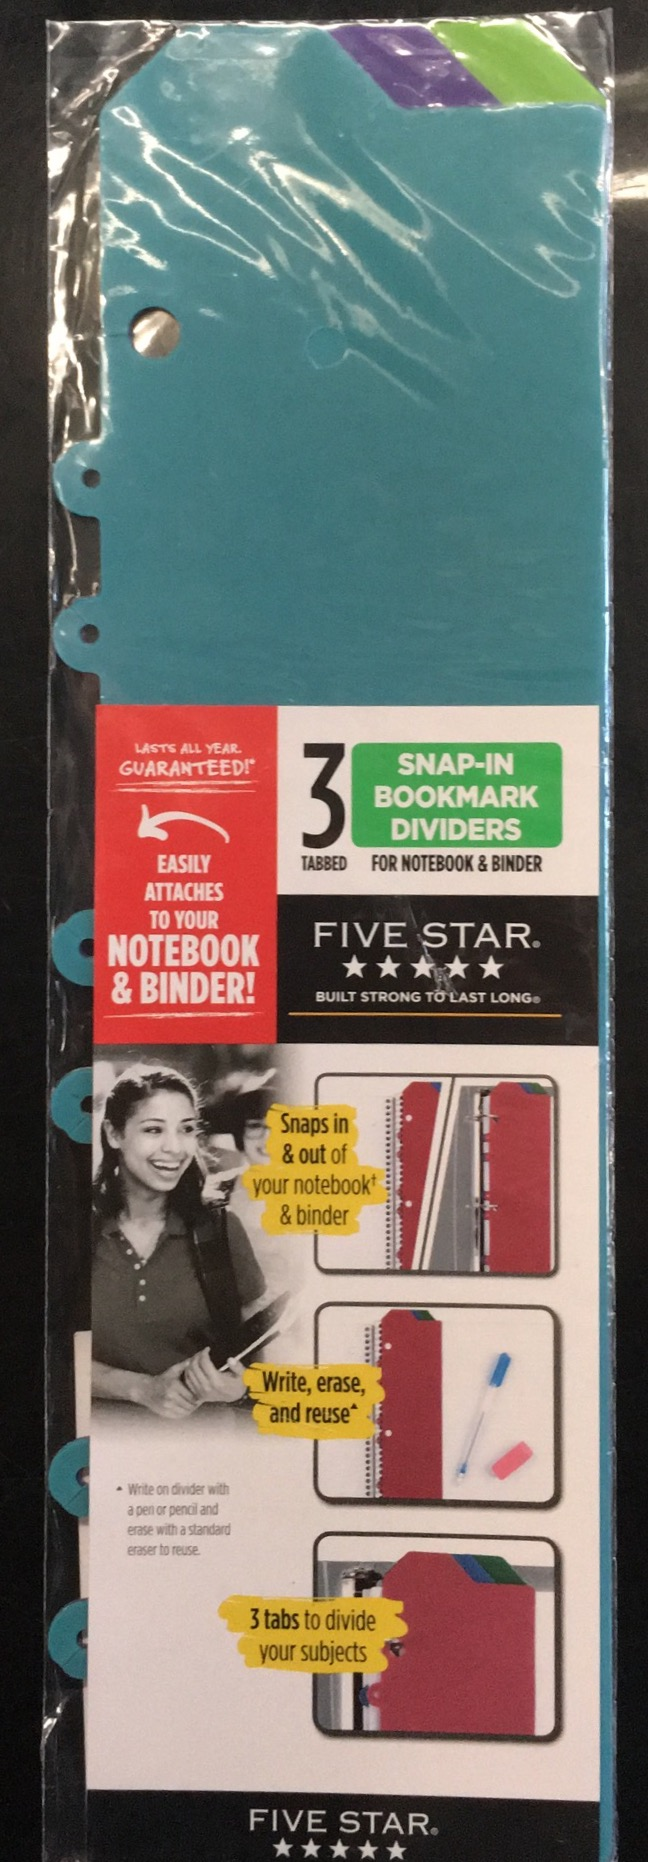 Snap-In Bookmark Dividers